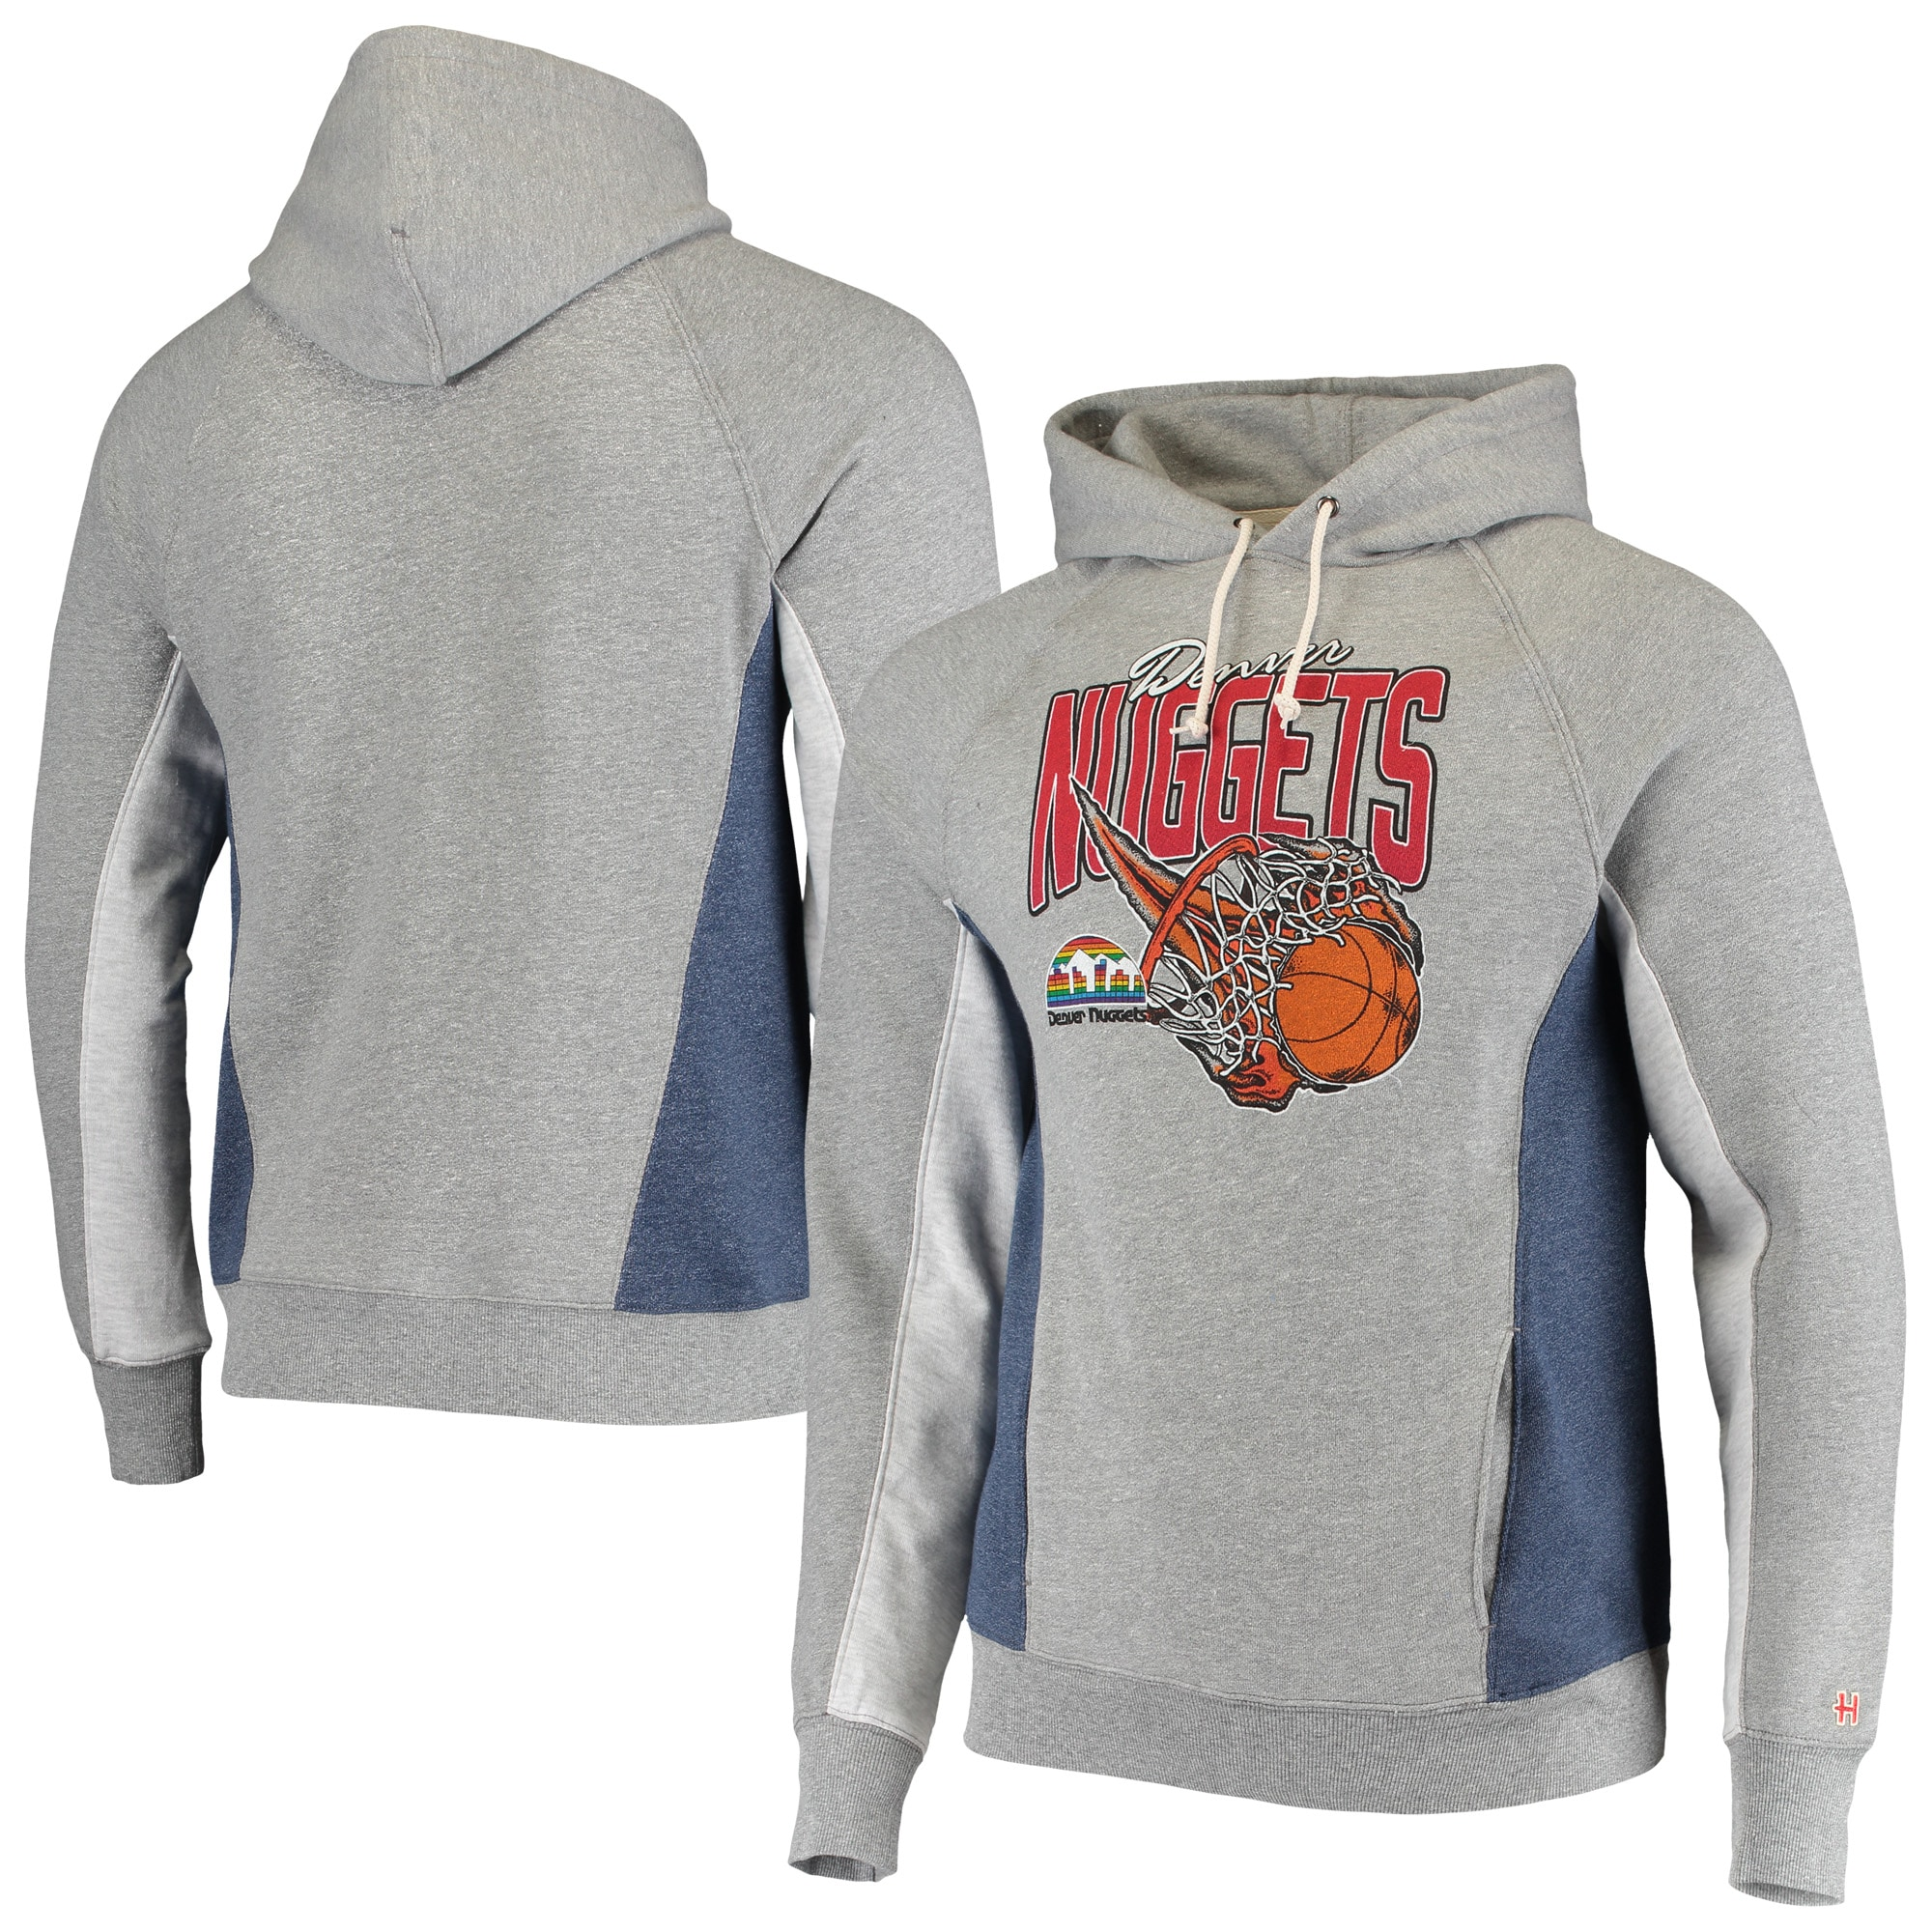 Denver Nuggets Homage On Fire Tri-Blend Pullover Hoodie - Gray/Navy